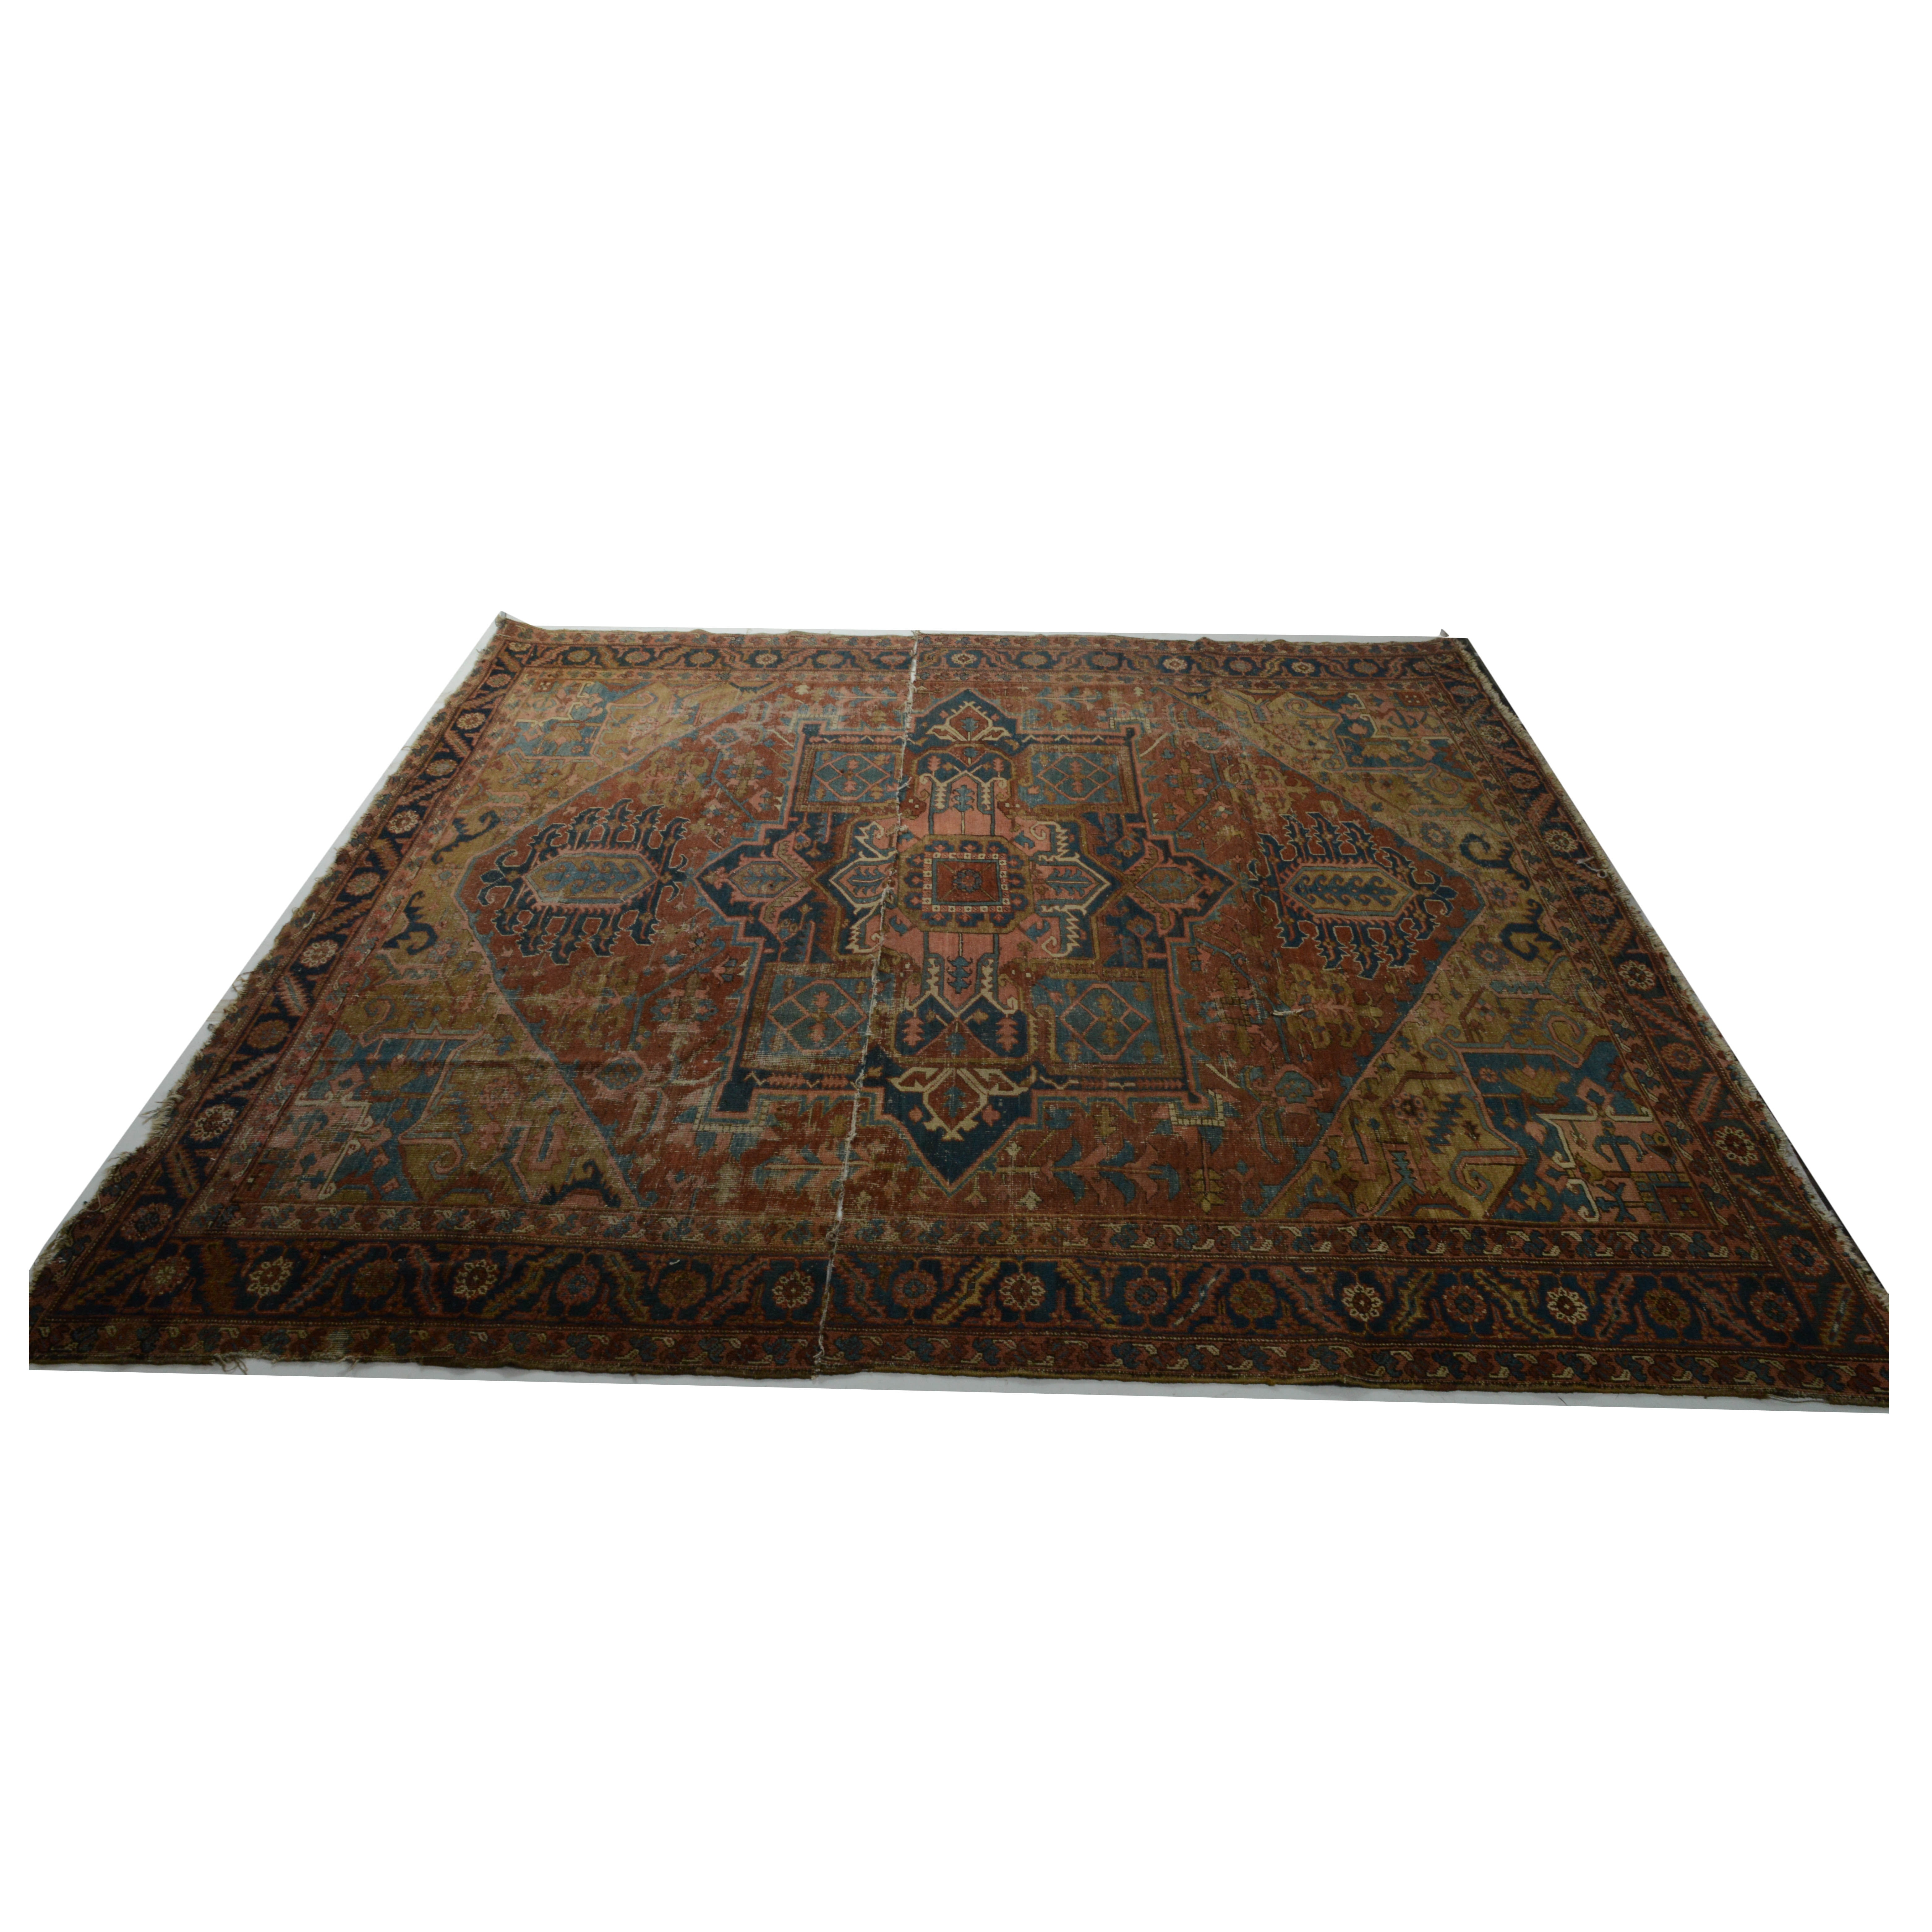 Antique Hand Knotted Persian Heriz Room Size Rug Remnants